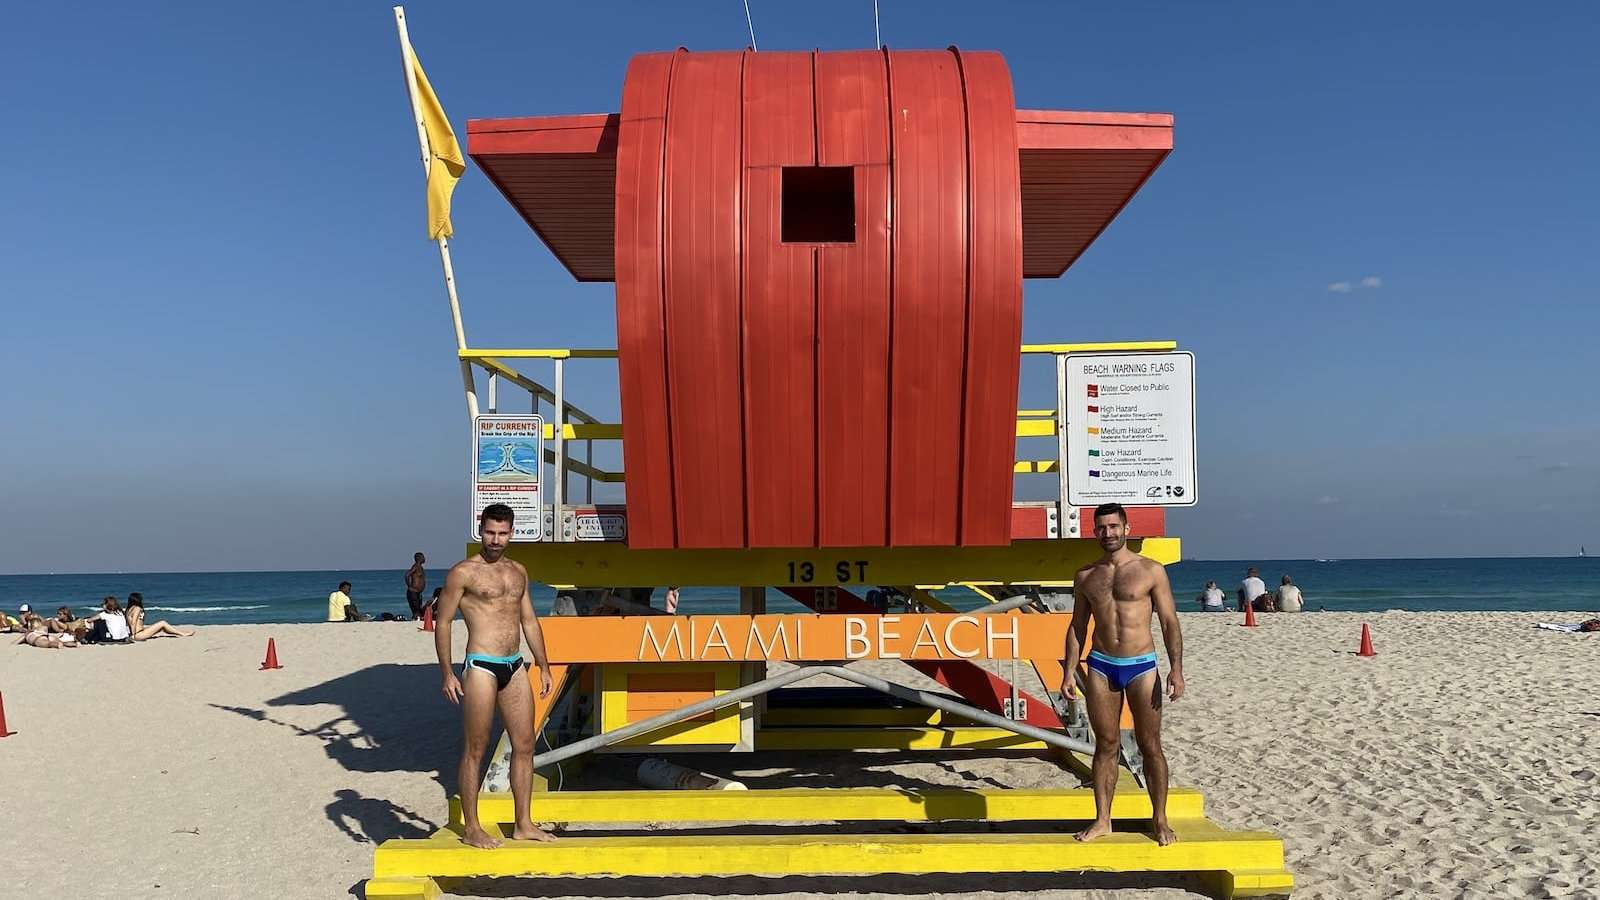 The beaches are fab in Miami, but you'll need to keep your clothes on in the resorts!